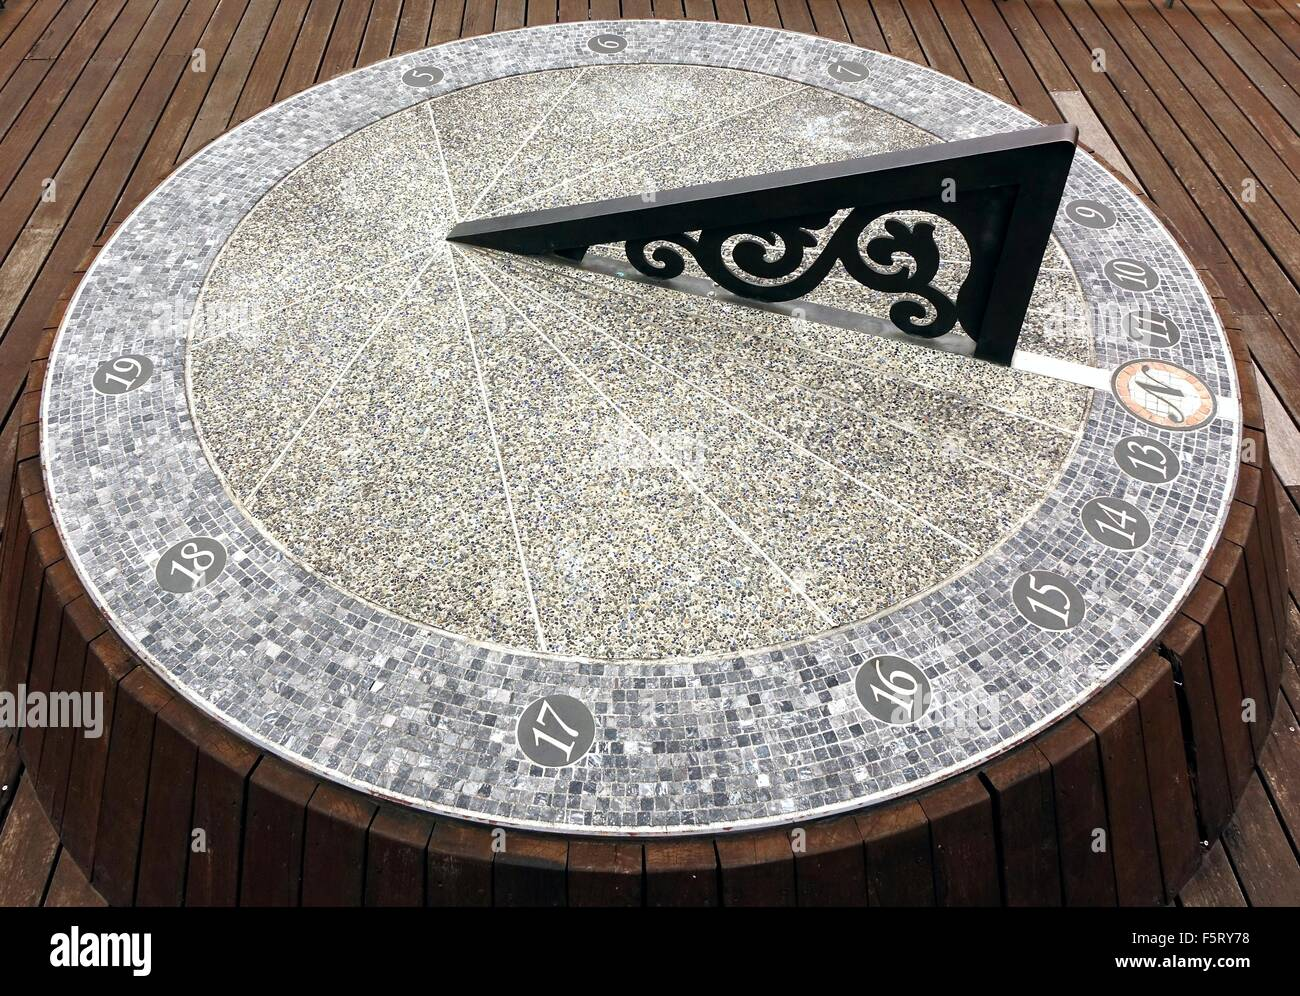 A large sundial timepiece that is aligned with the true north - Stock Image